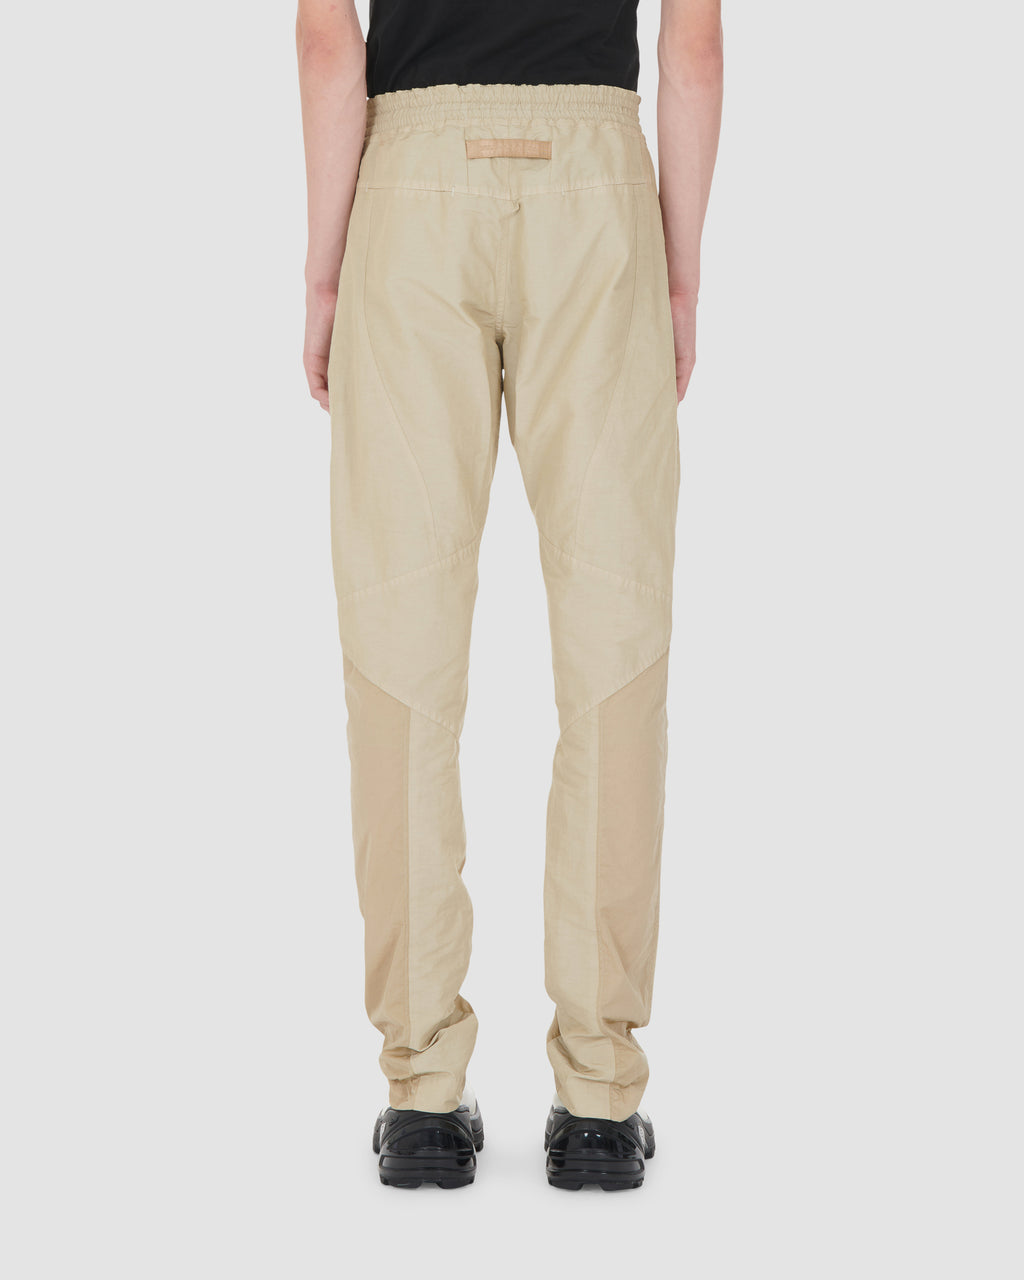 1017 ALYX 9SM | BIKER PANT | Pants | DARK SAND, Google Shopping, Man, MEN, Pants, S20, S20 Drop II, Trousers